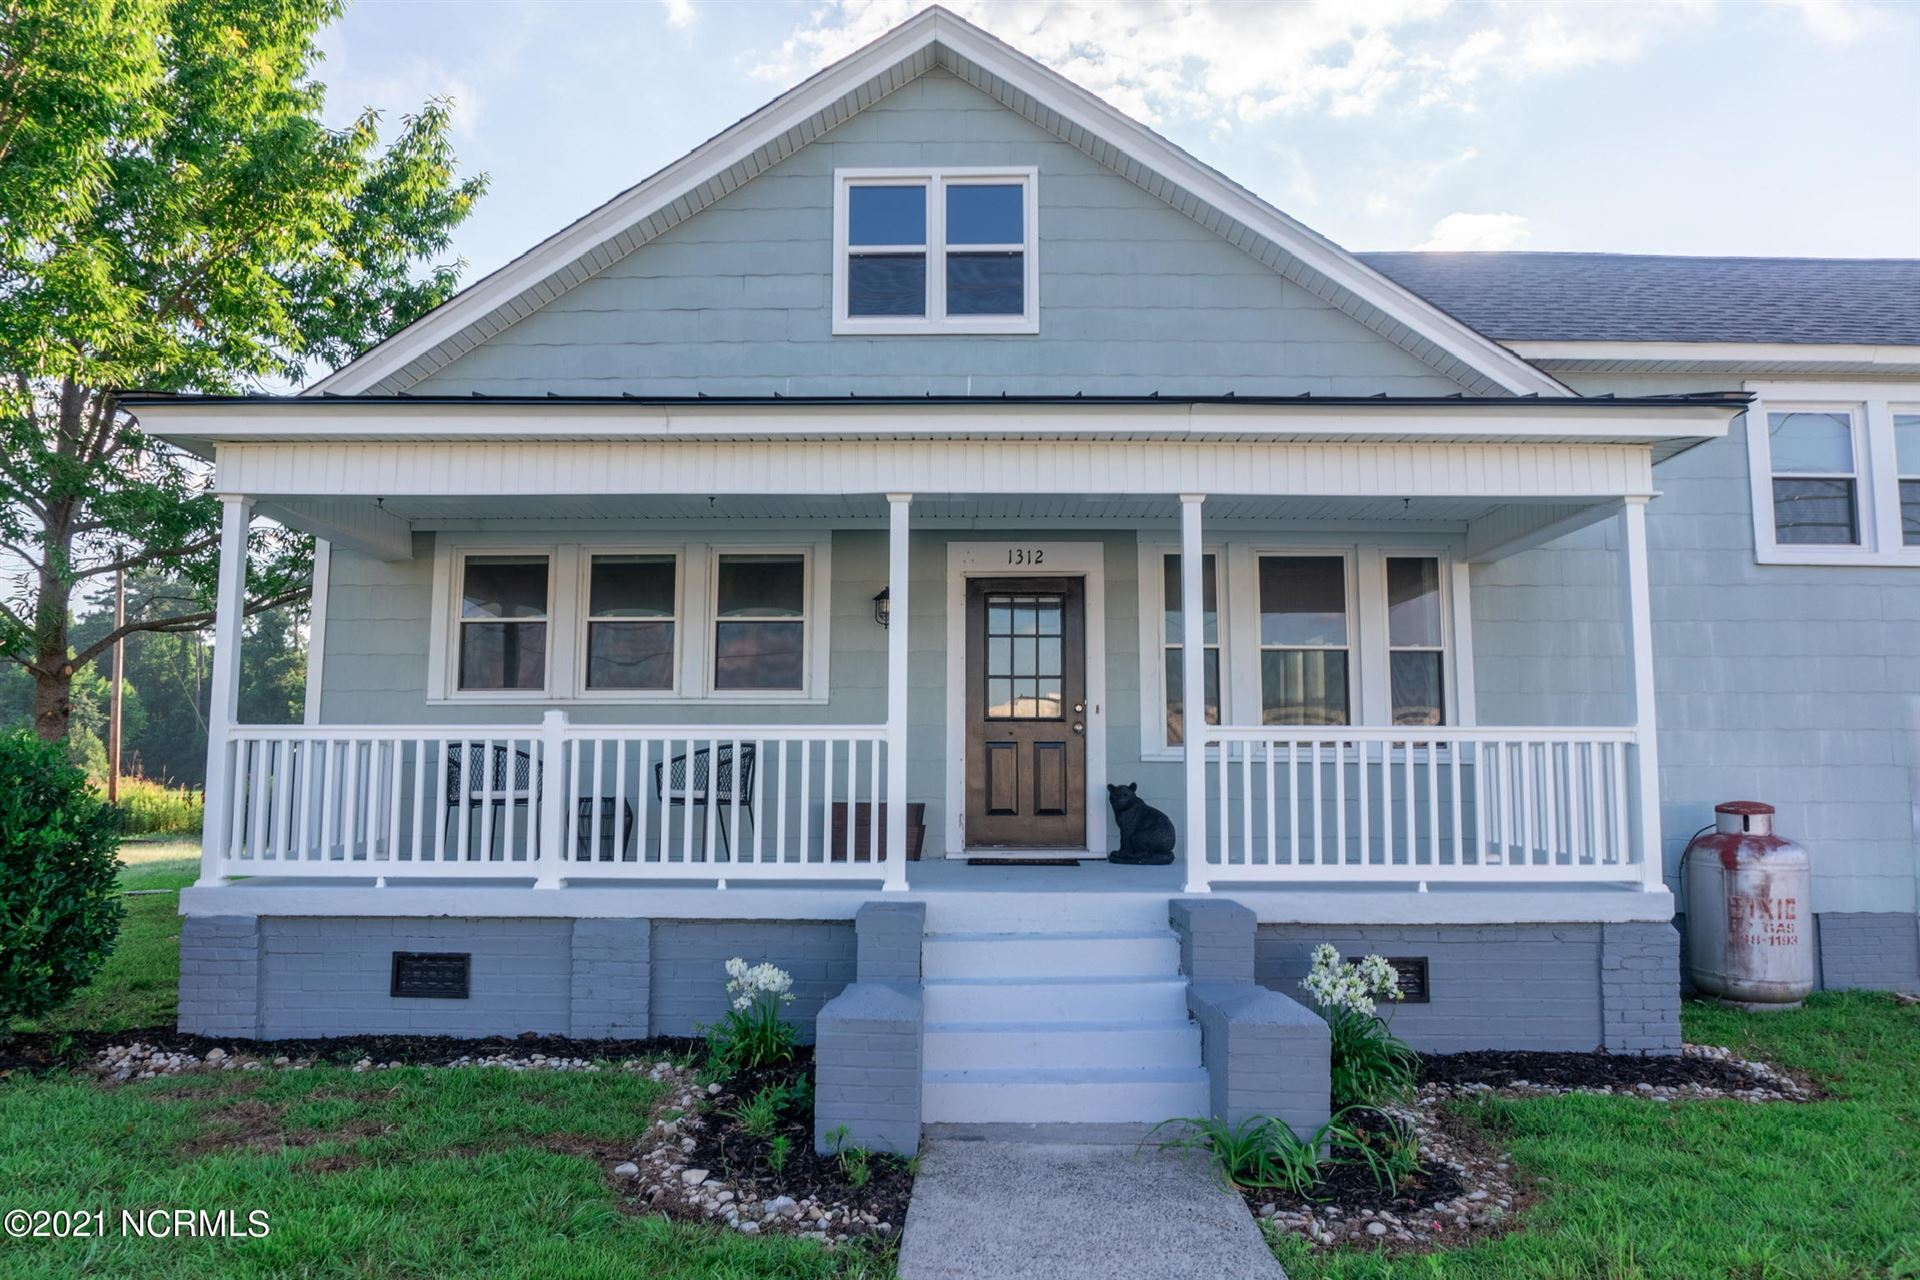 Photo of 1312 Old Cherry Point Road, New Bern, NC 28560 (MLS # 100279025)